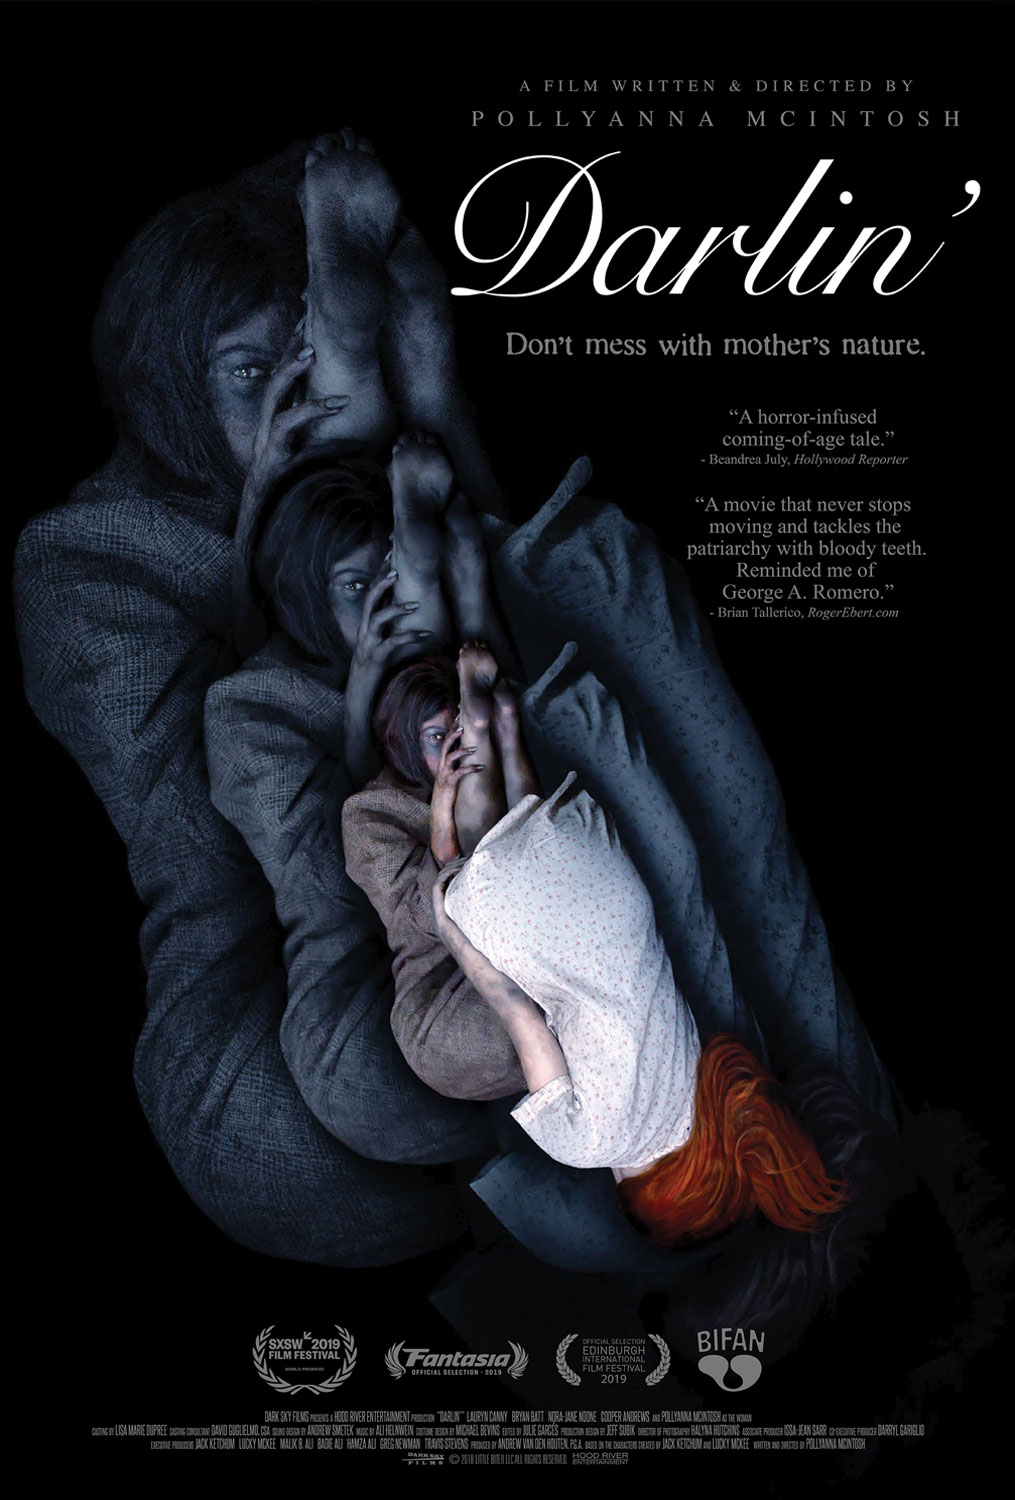 79thbroadway_darlin_movie_poster.jpg